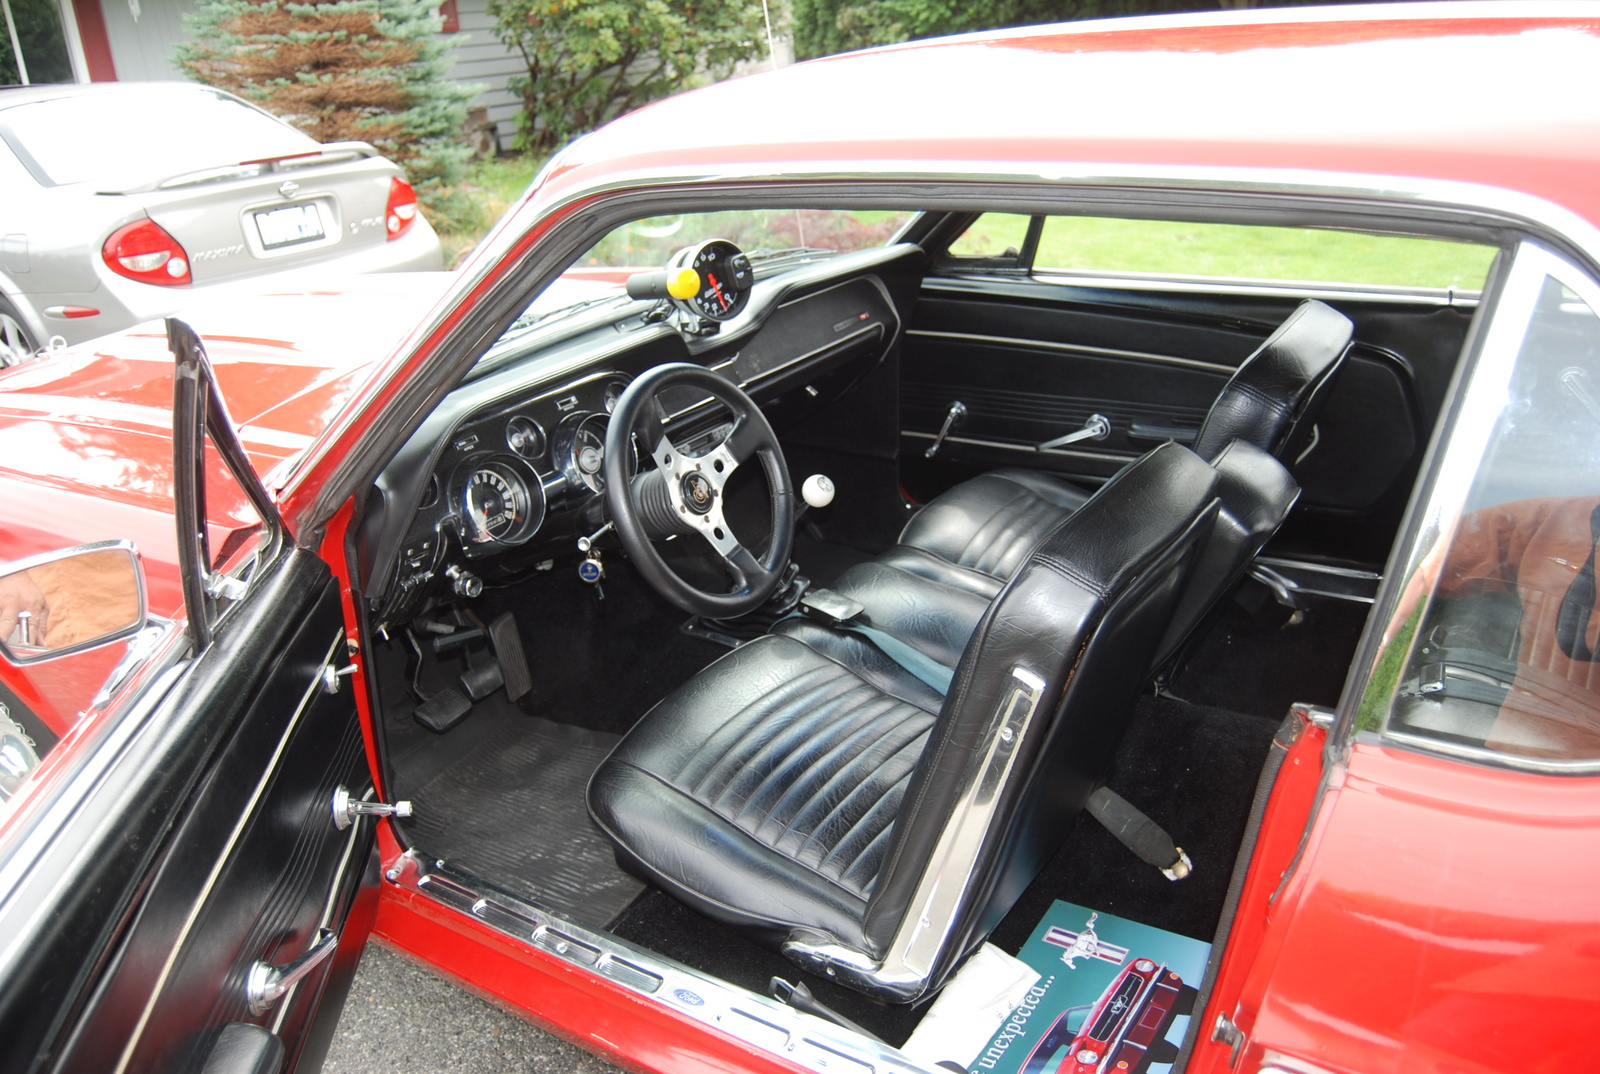 picture of 1967 ford mustang coupe interior quotes - 1967 Ford Mustang Interior